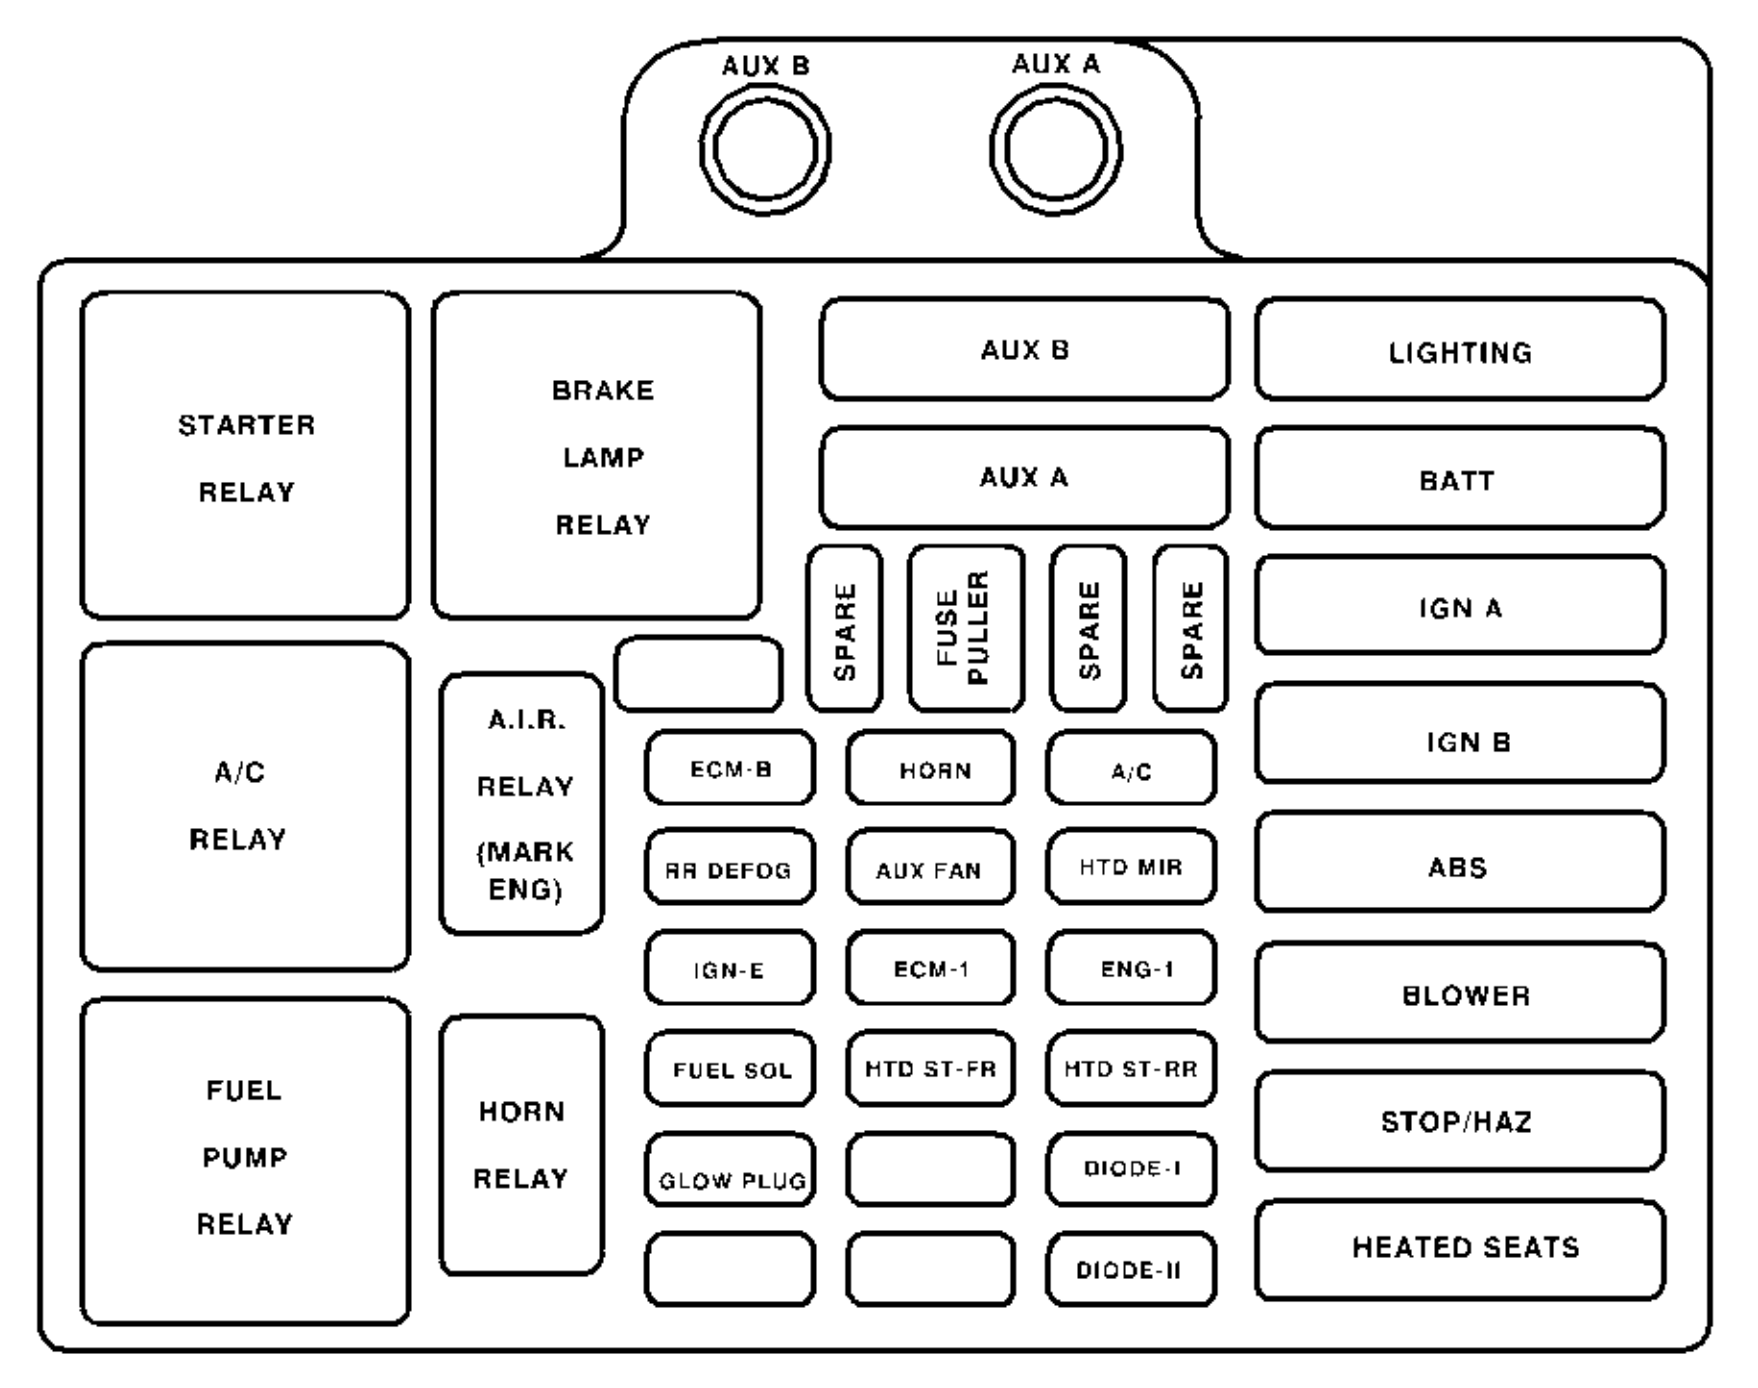 hight resolution of 98 gmc fuse box diagram wiring diagram name 98 gmc sierra fuse box diagram wiring diagram